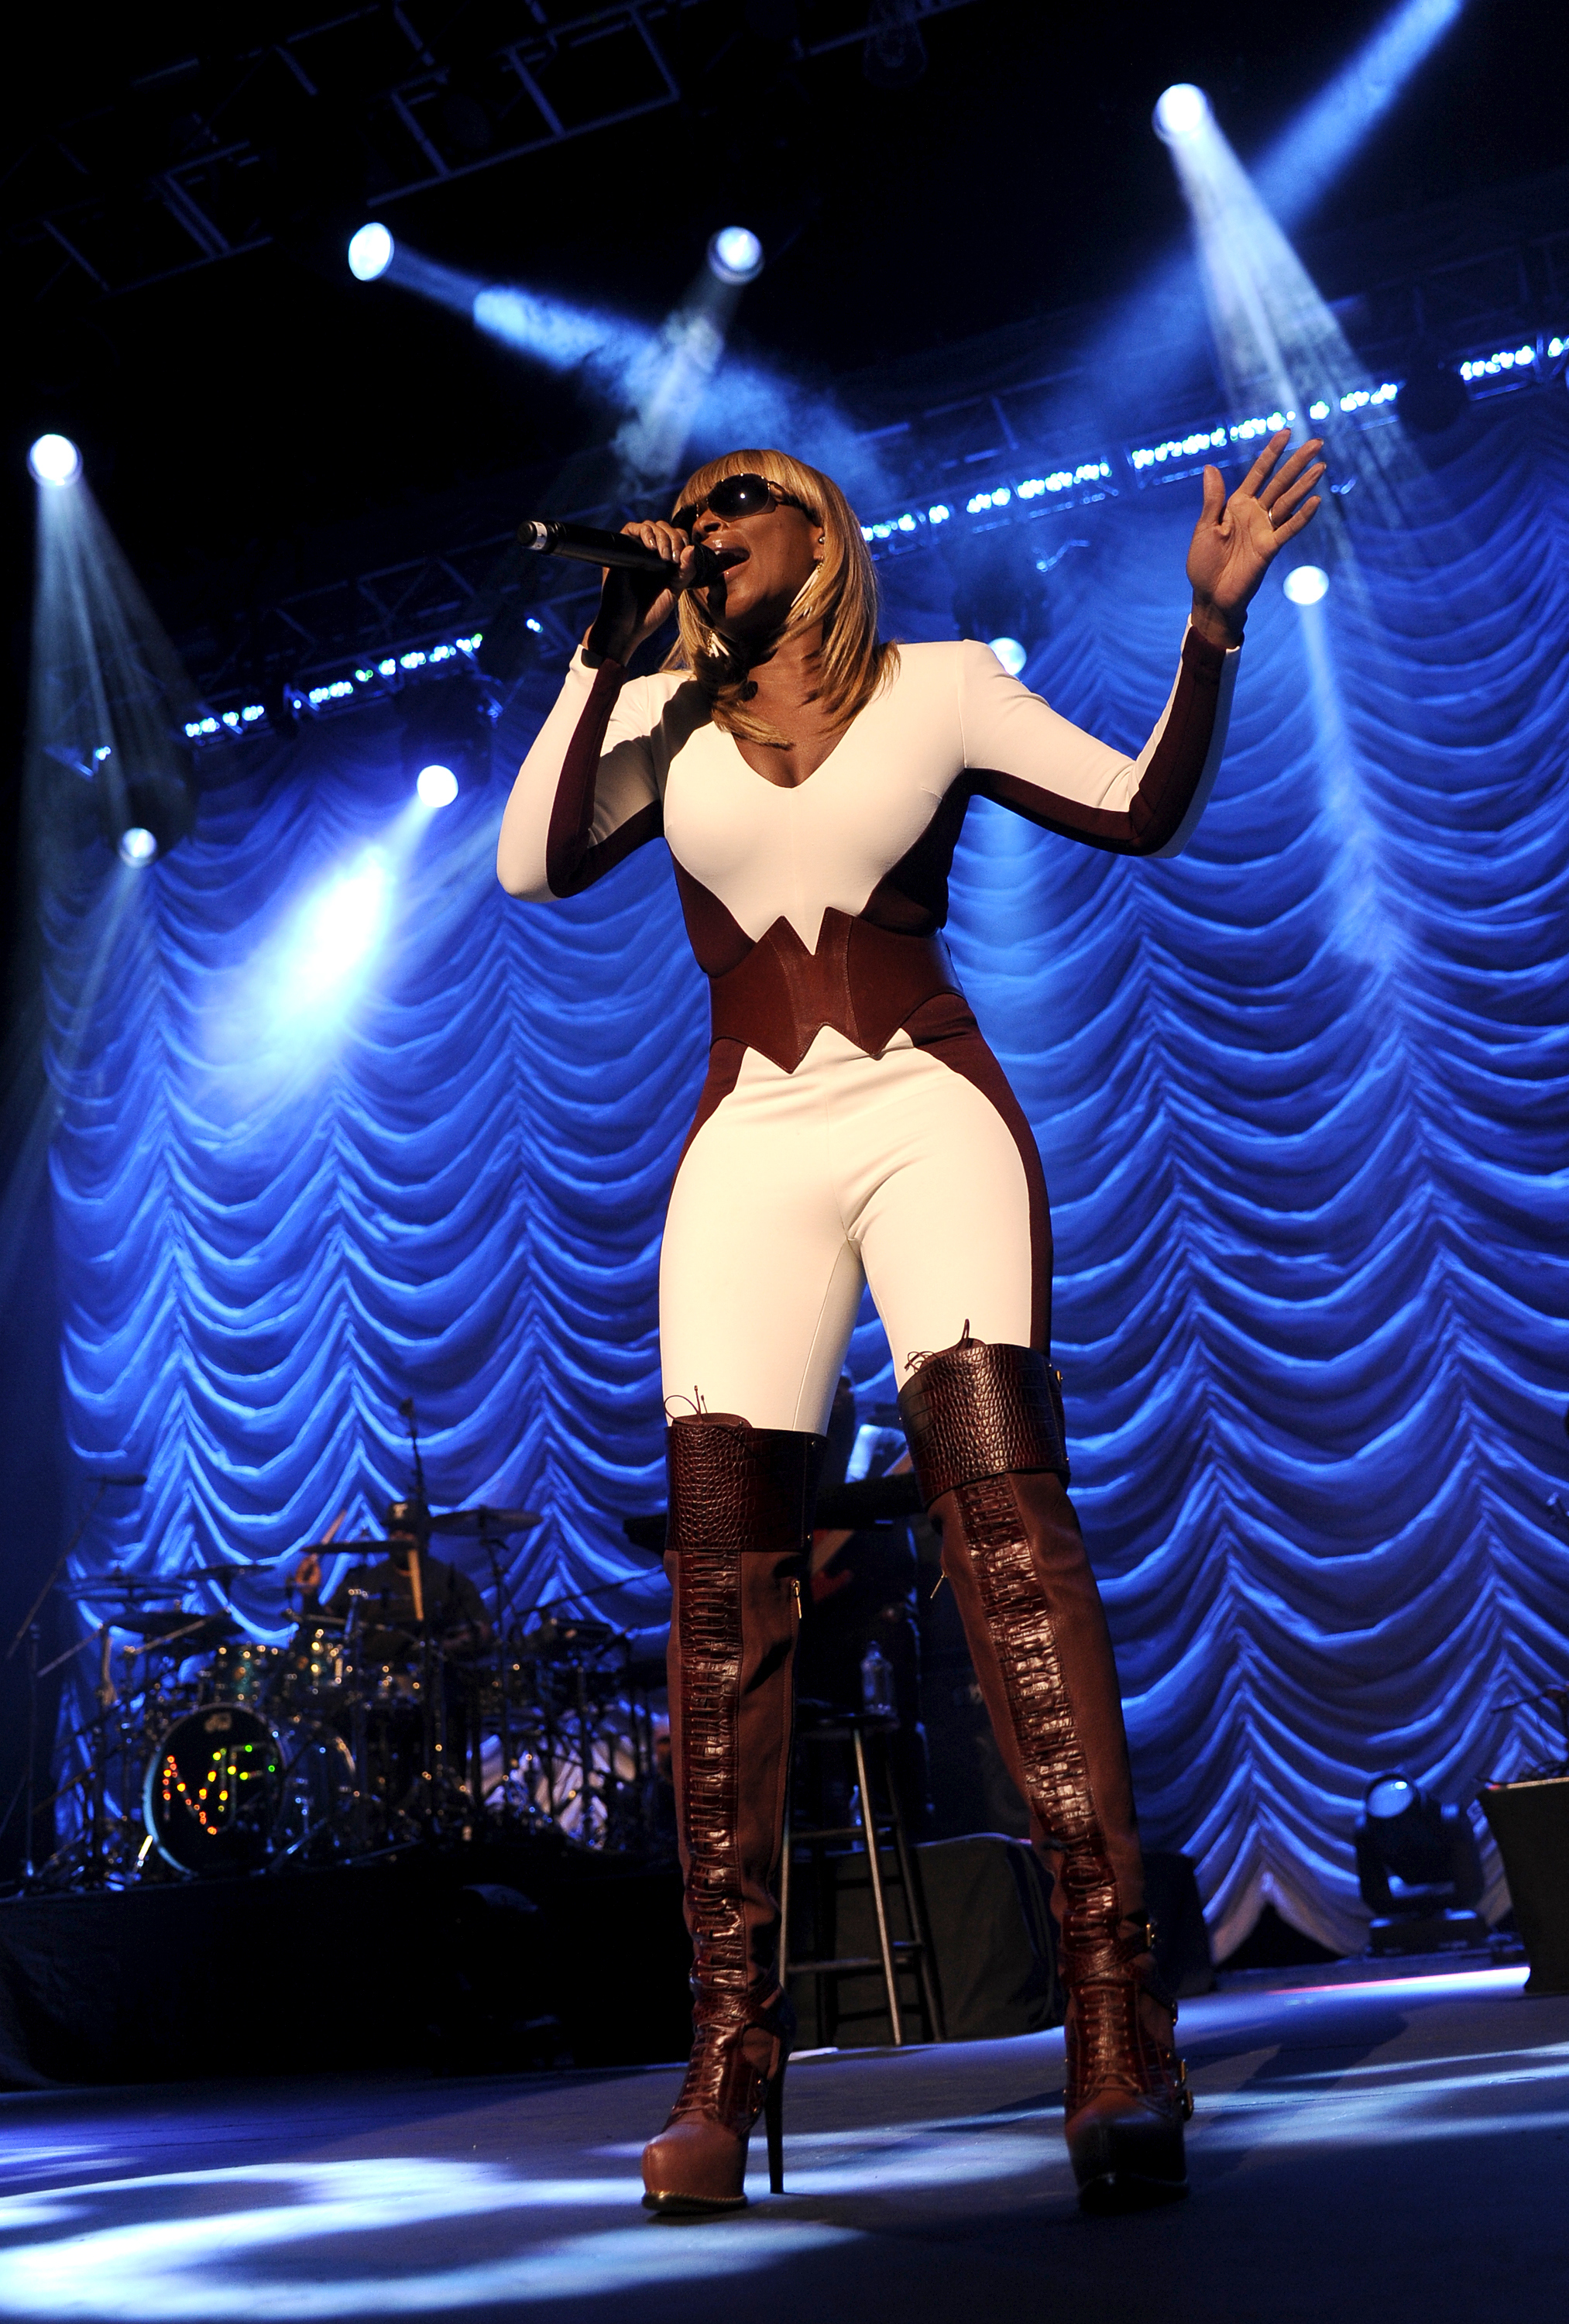 USA - Music - Mary J. Blige In Concert - Oakland CA